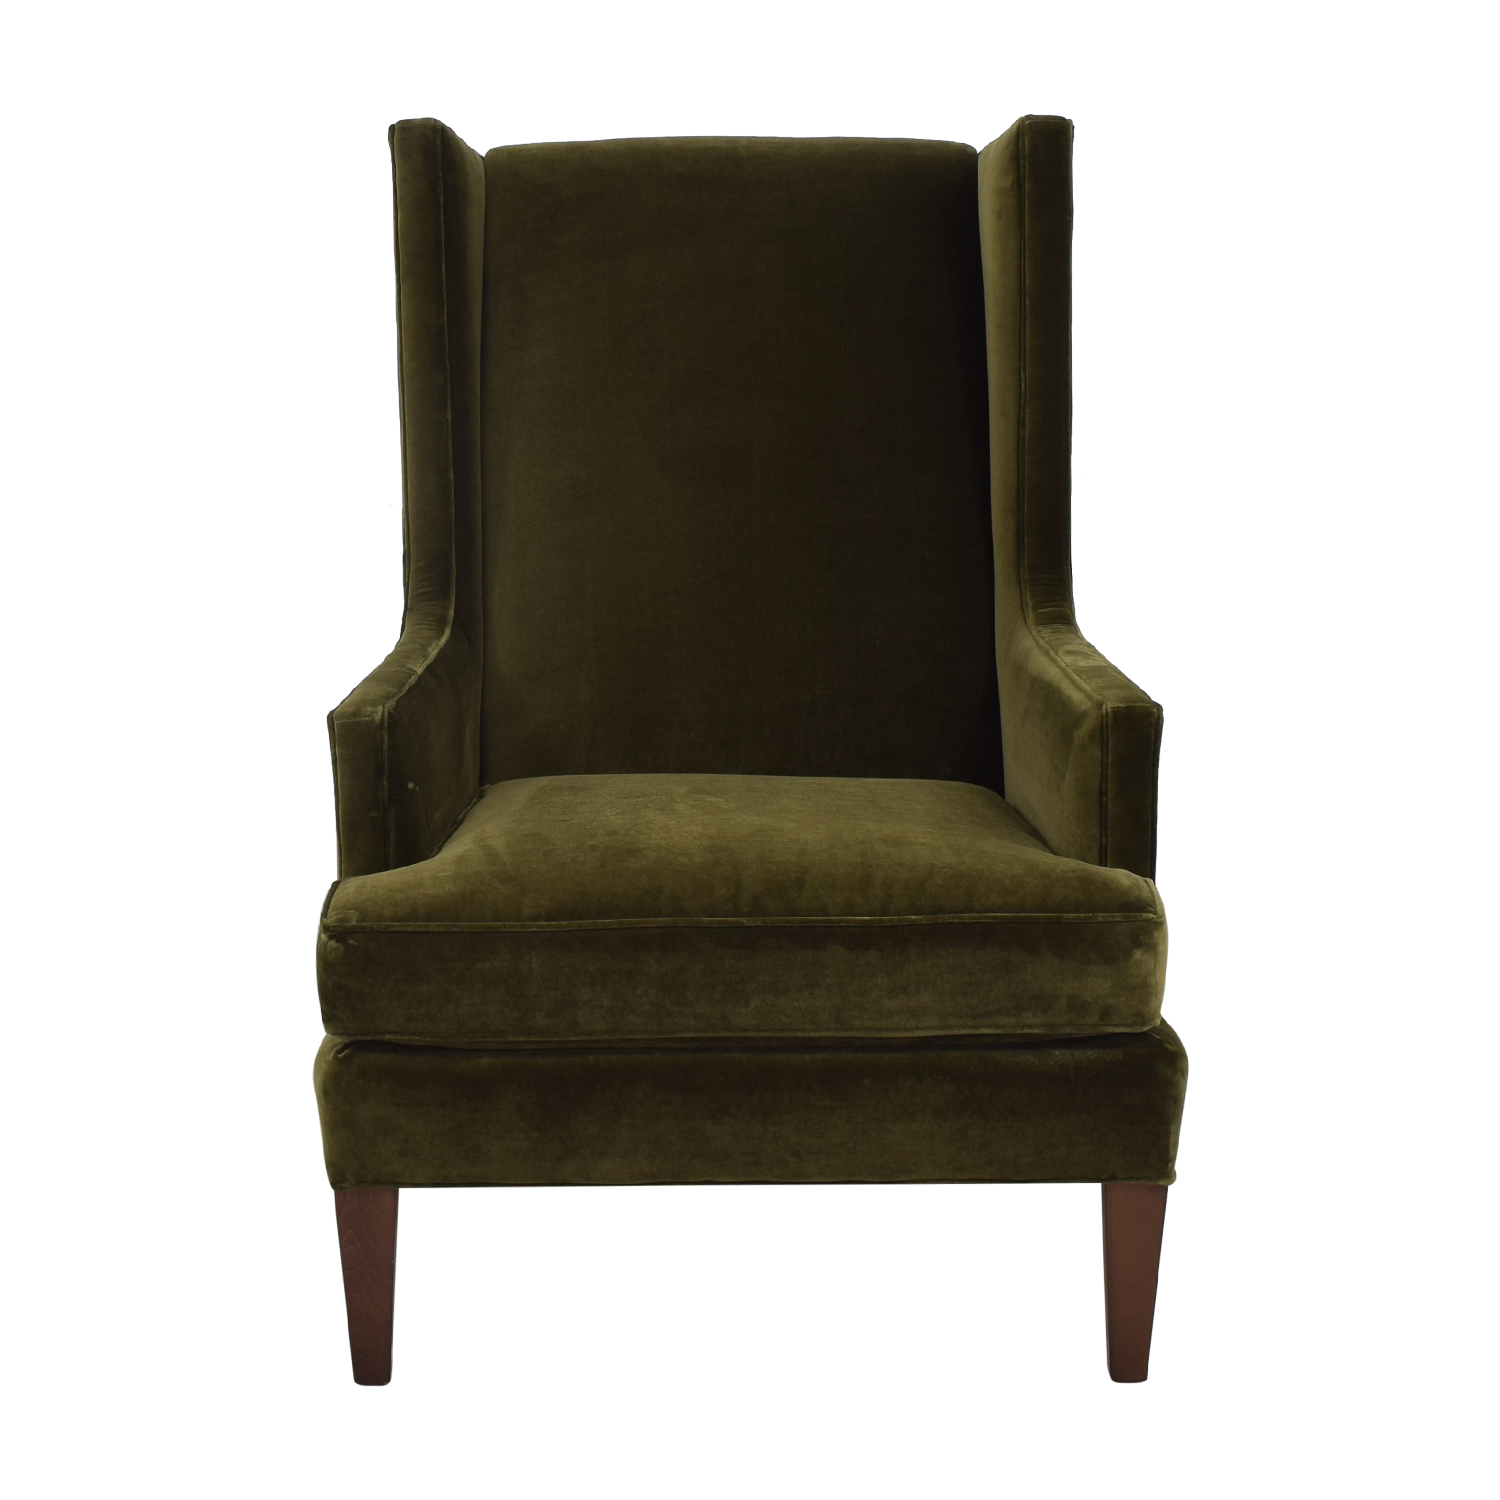 Crate Barrel Luxe Wingback Chair